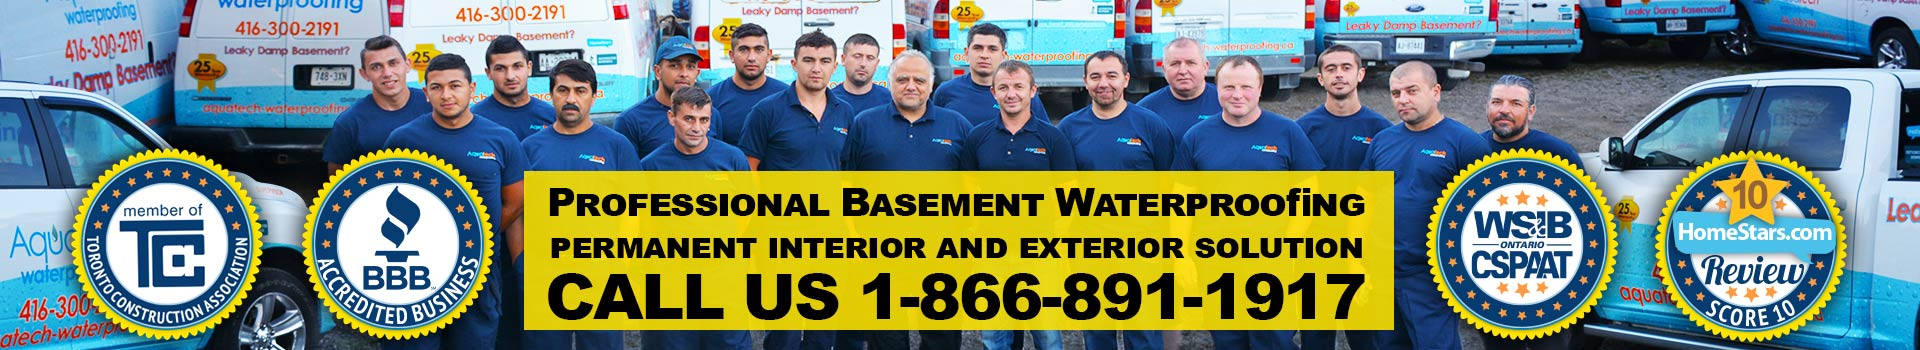 aquatech-basement-waterproofing-team-banner